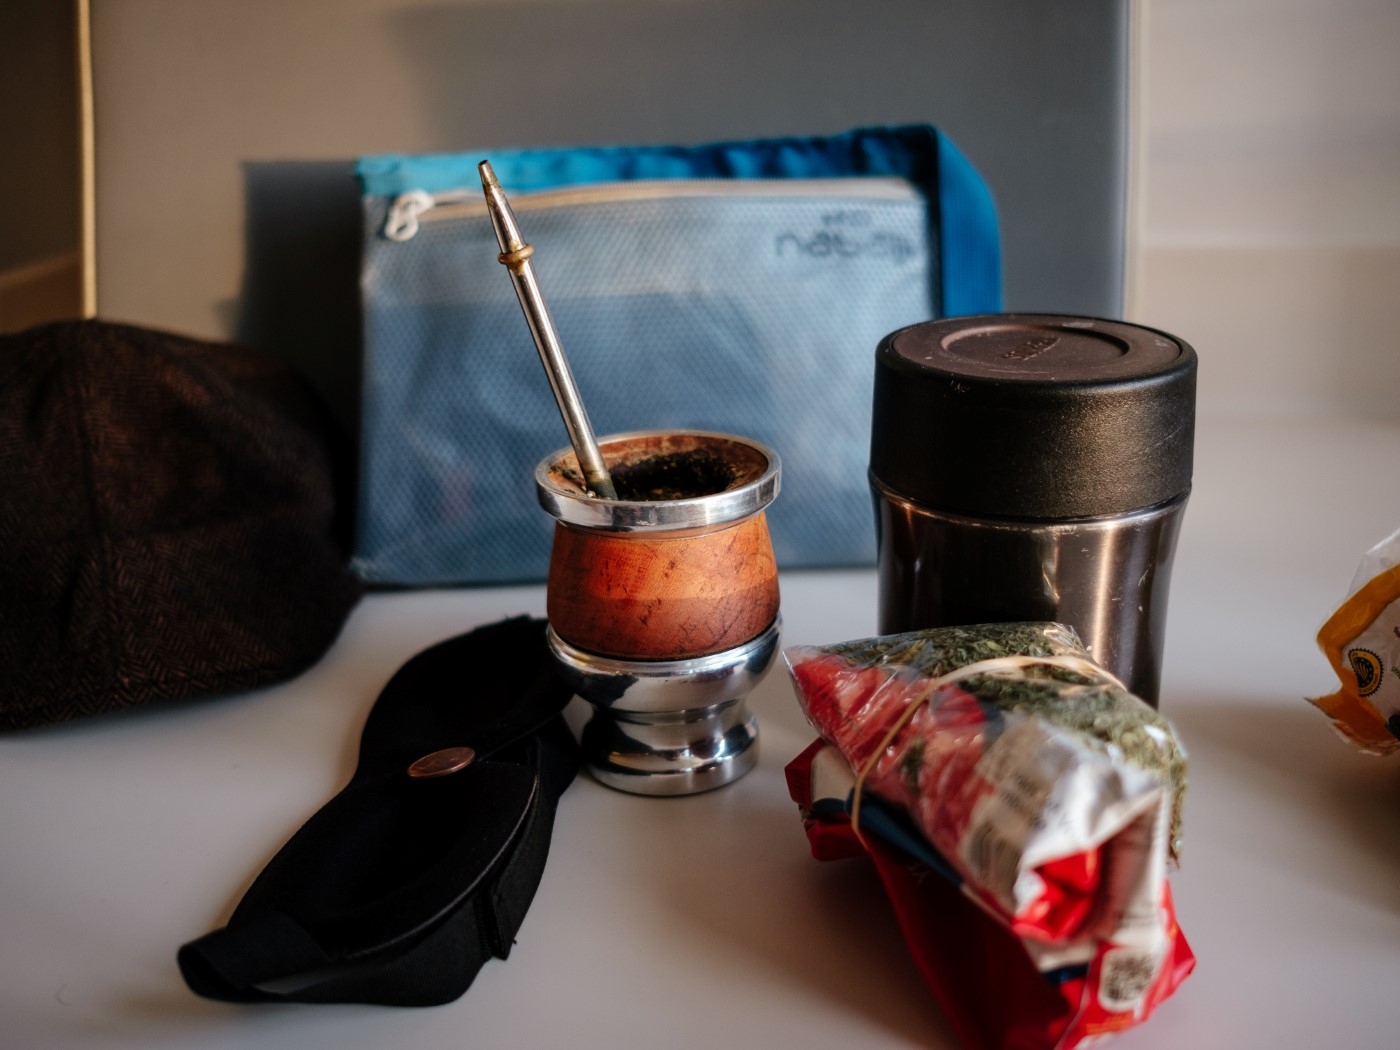 mate – béret – masque d'avion – trousse de toilette